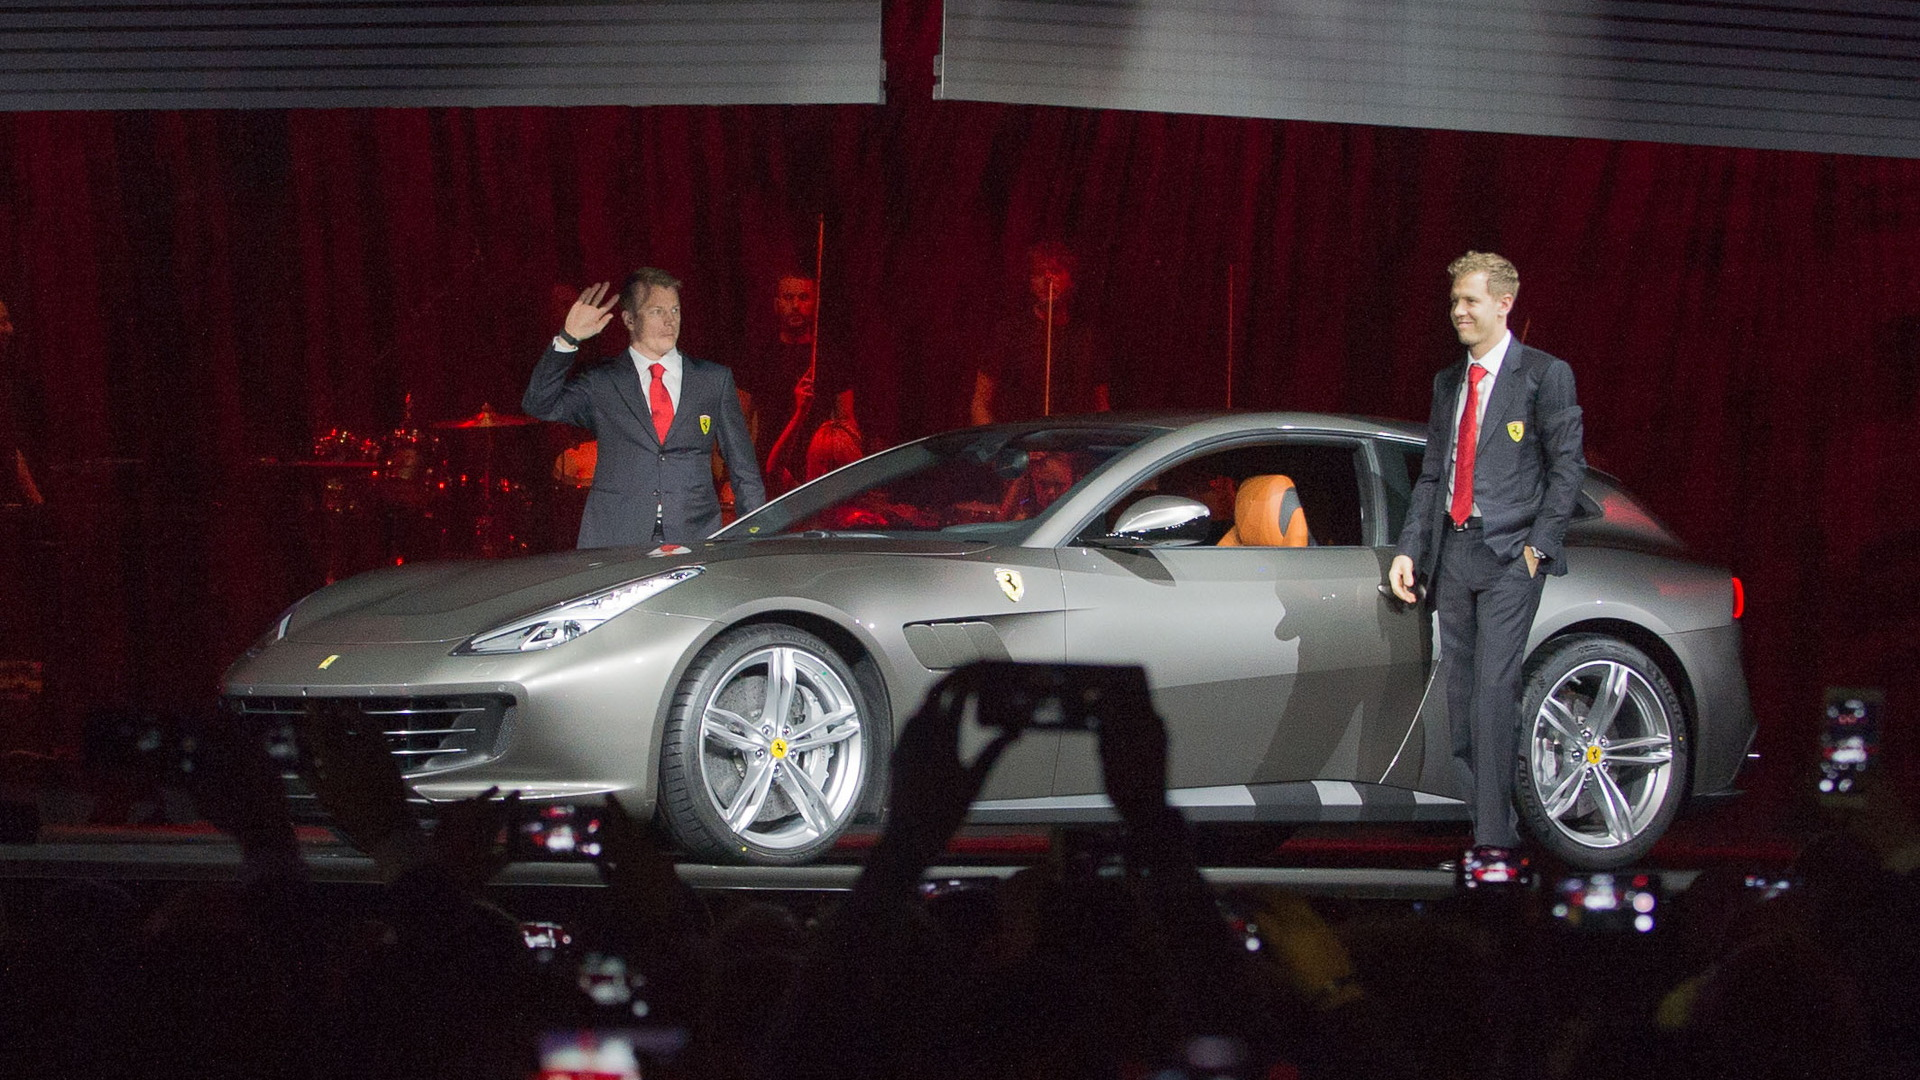 Ferrari GTC4 Lusso launch at Villa Erba, February 15, 2016